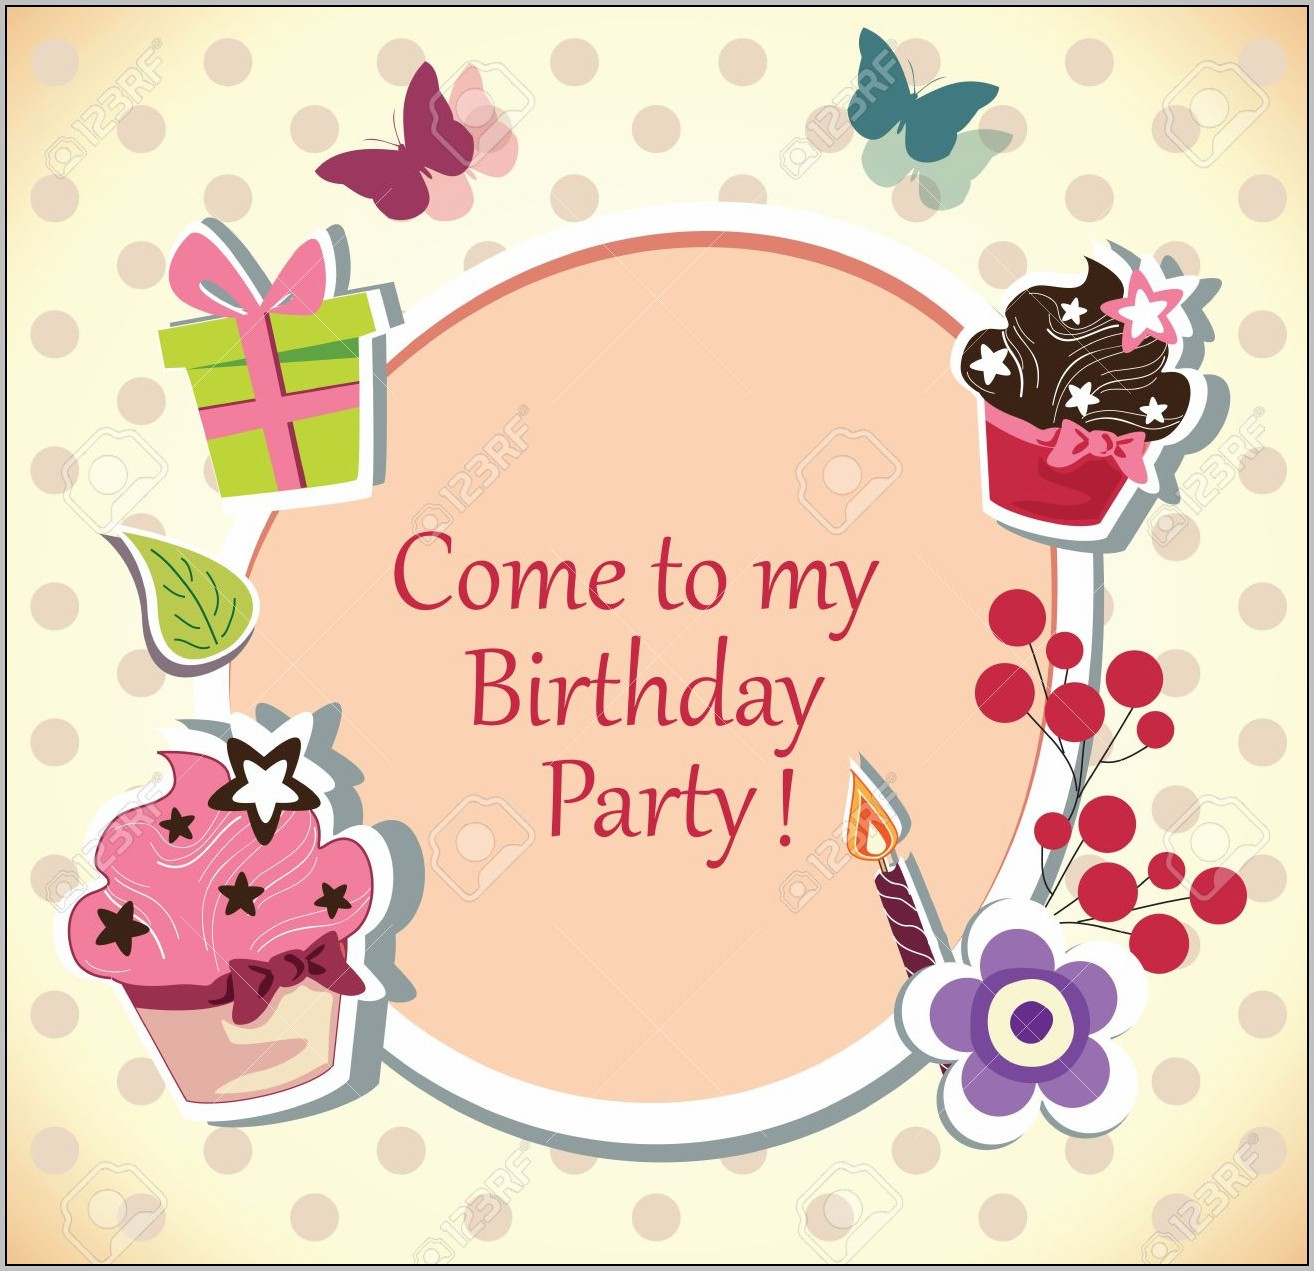 Birthday Party Invitation Cards Singapore